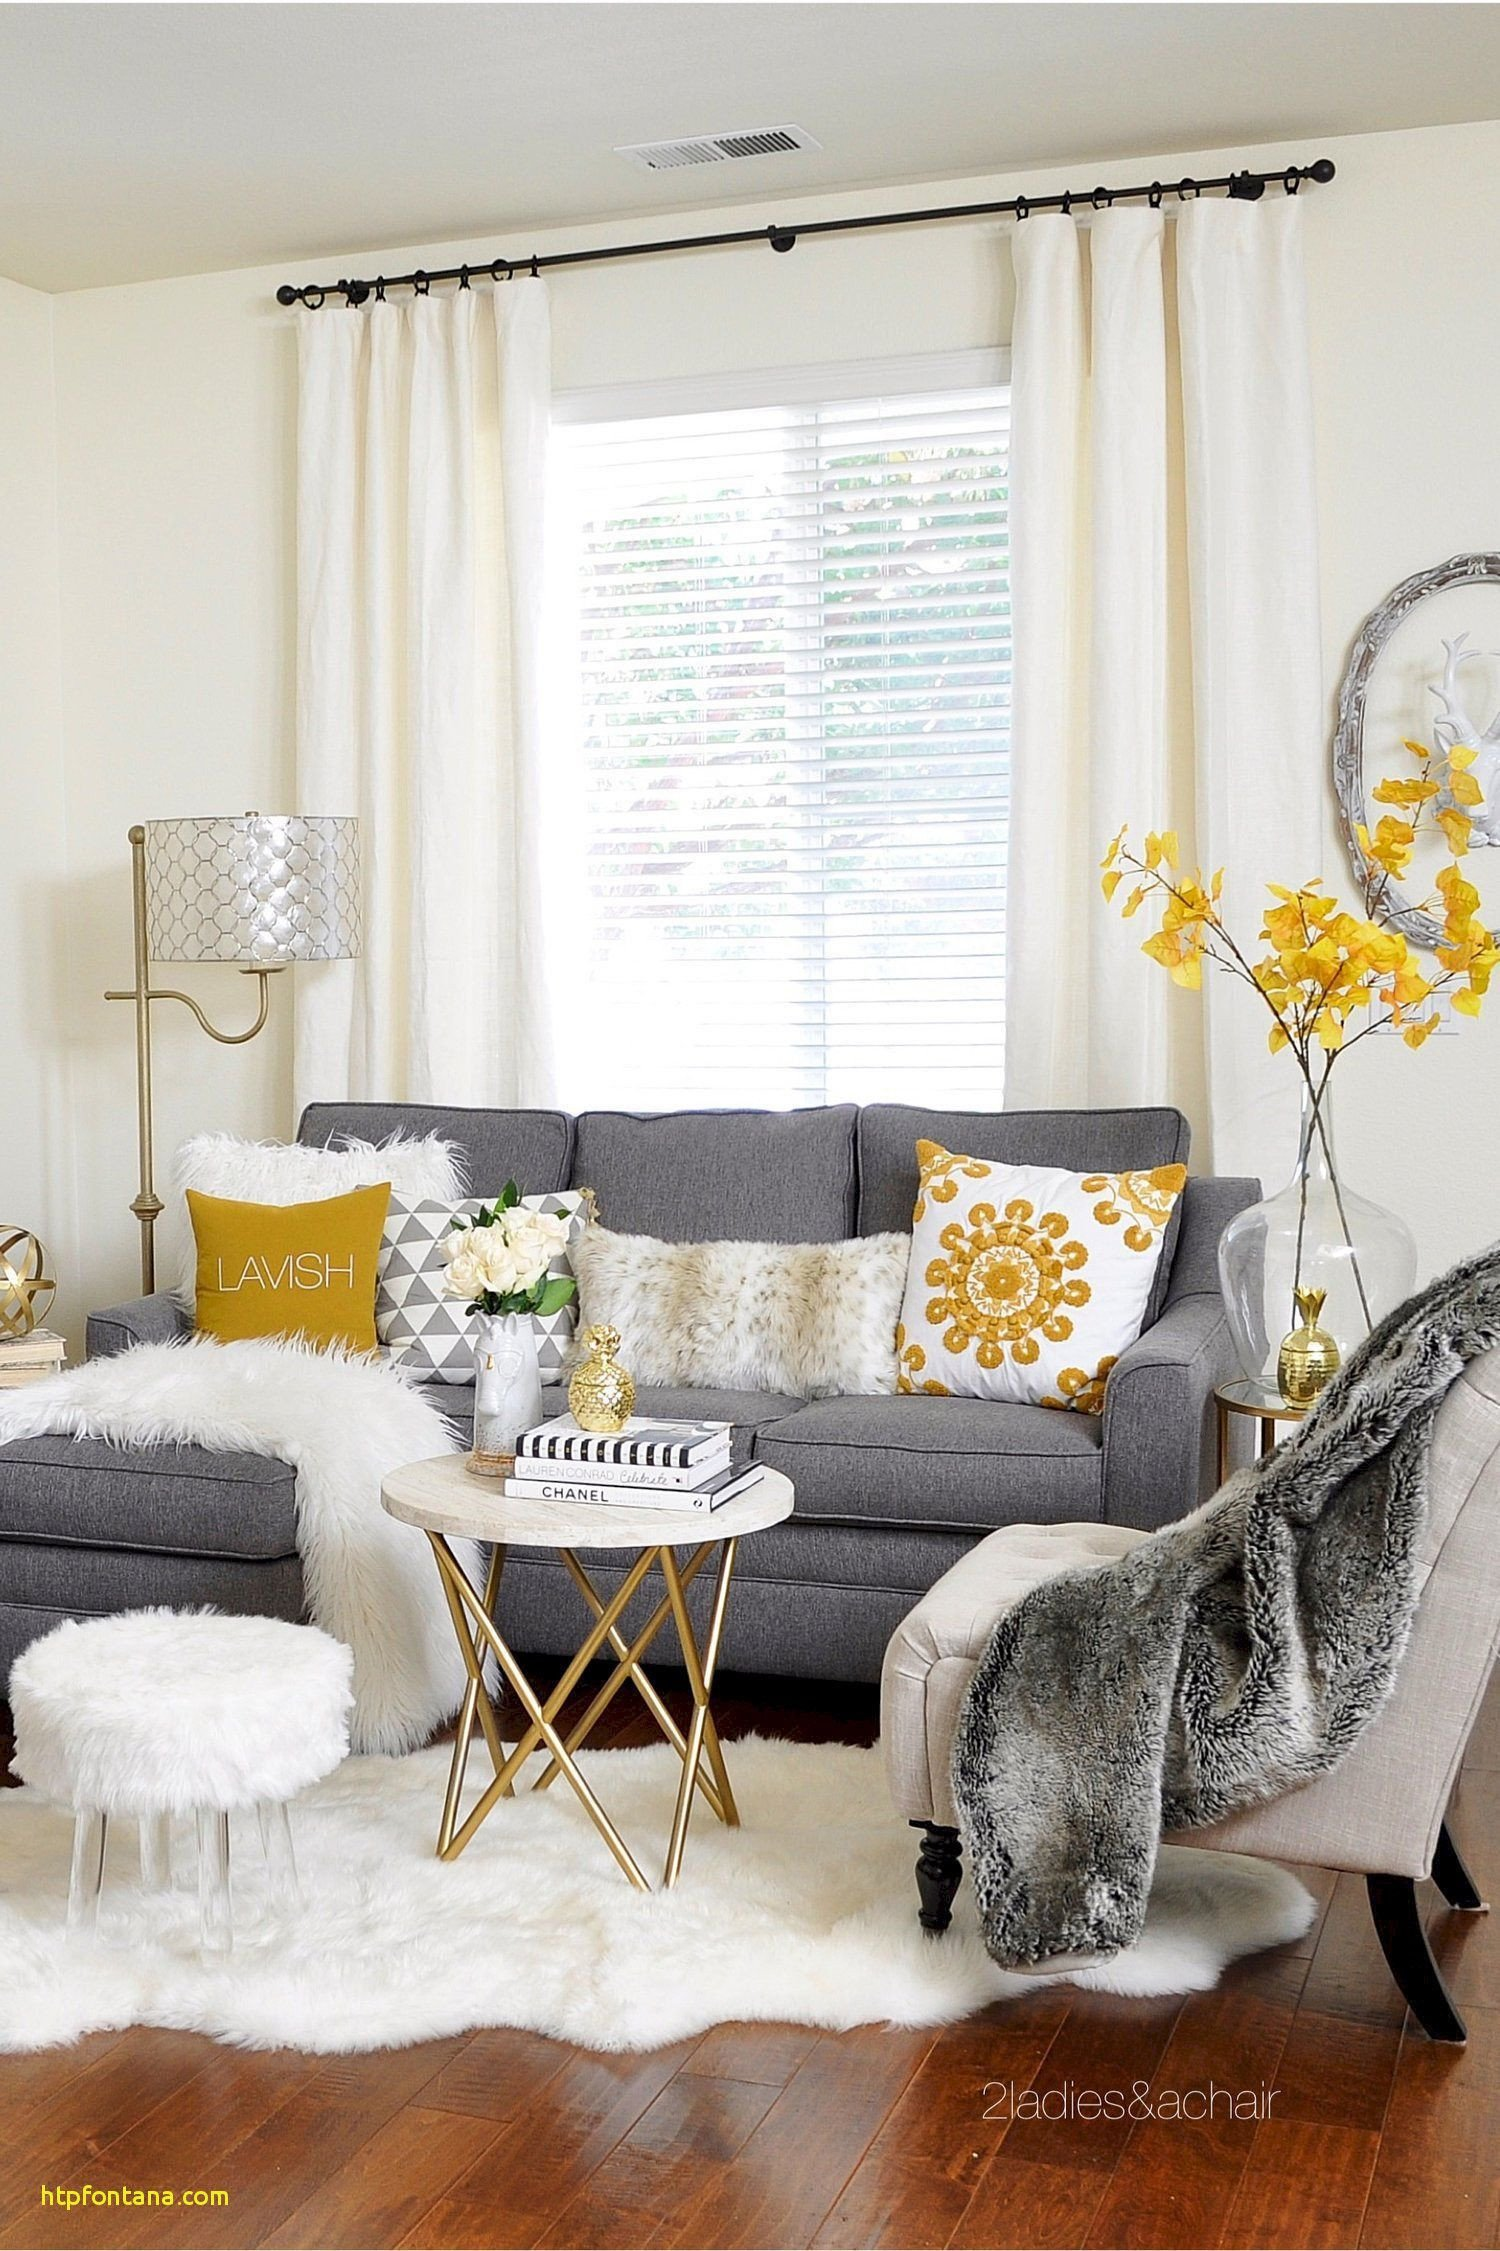 Small Loveseat for Bedroom Beautiful Grey and Mustard Living Room Ideas